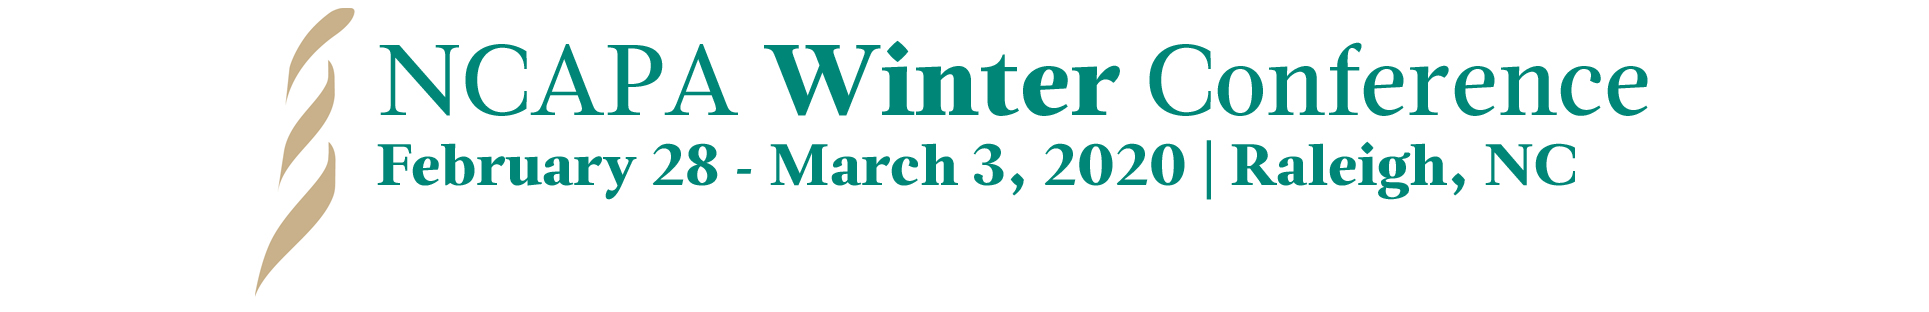 Winter CME Conference - NCAPA